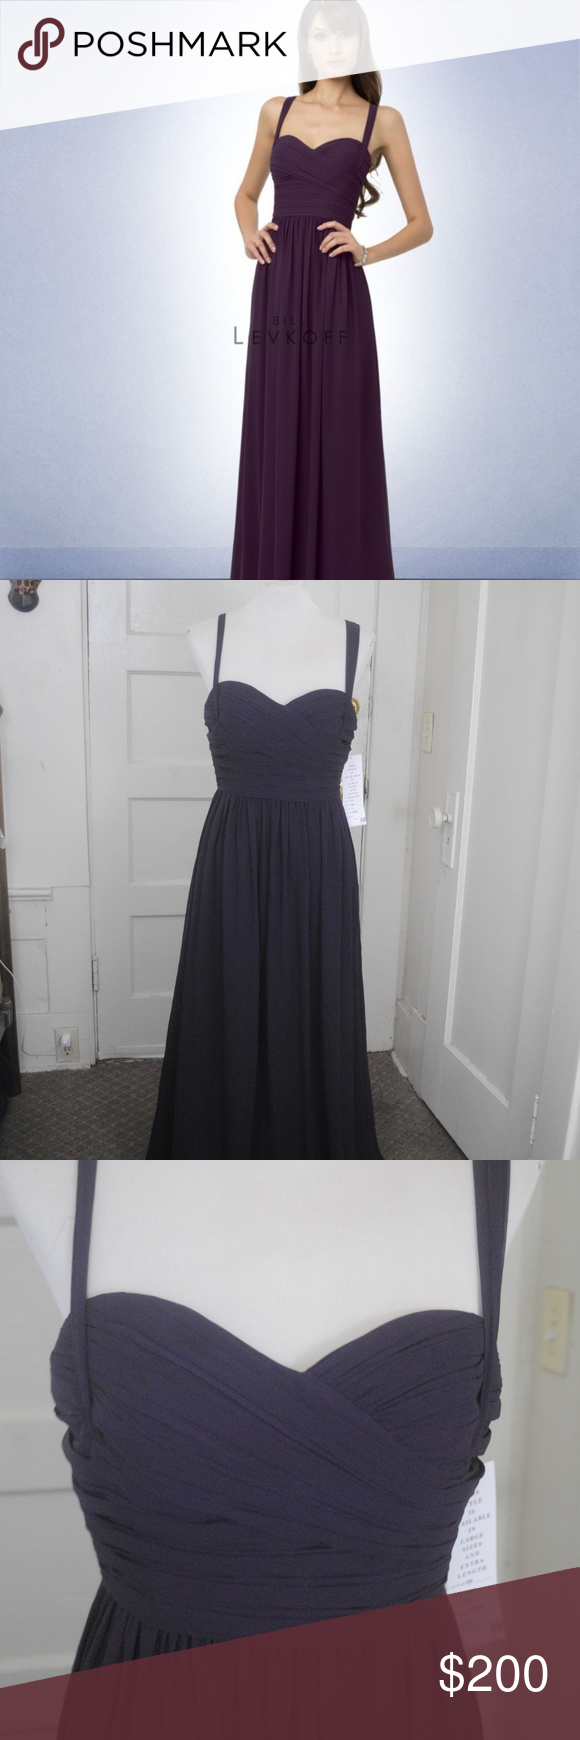 c4cbbb106ee Bill Levkoff Bridesmaid Dress Style 769 Plum 229 Waist 29 Bust 34.5 Length  53 Size 10 Bill Levkoff Dresses Strapless